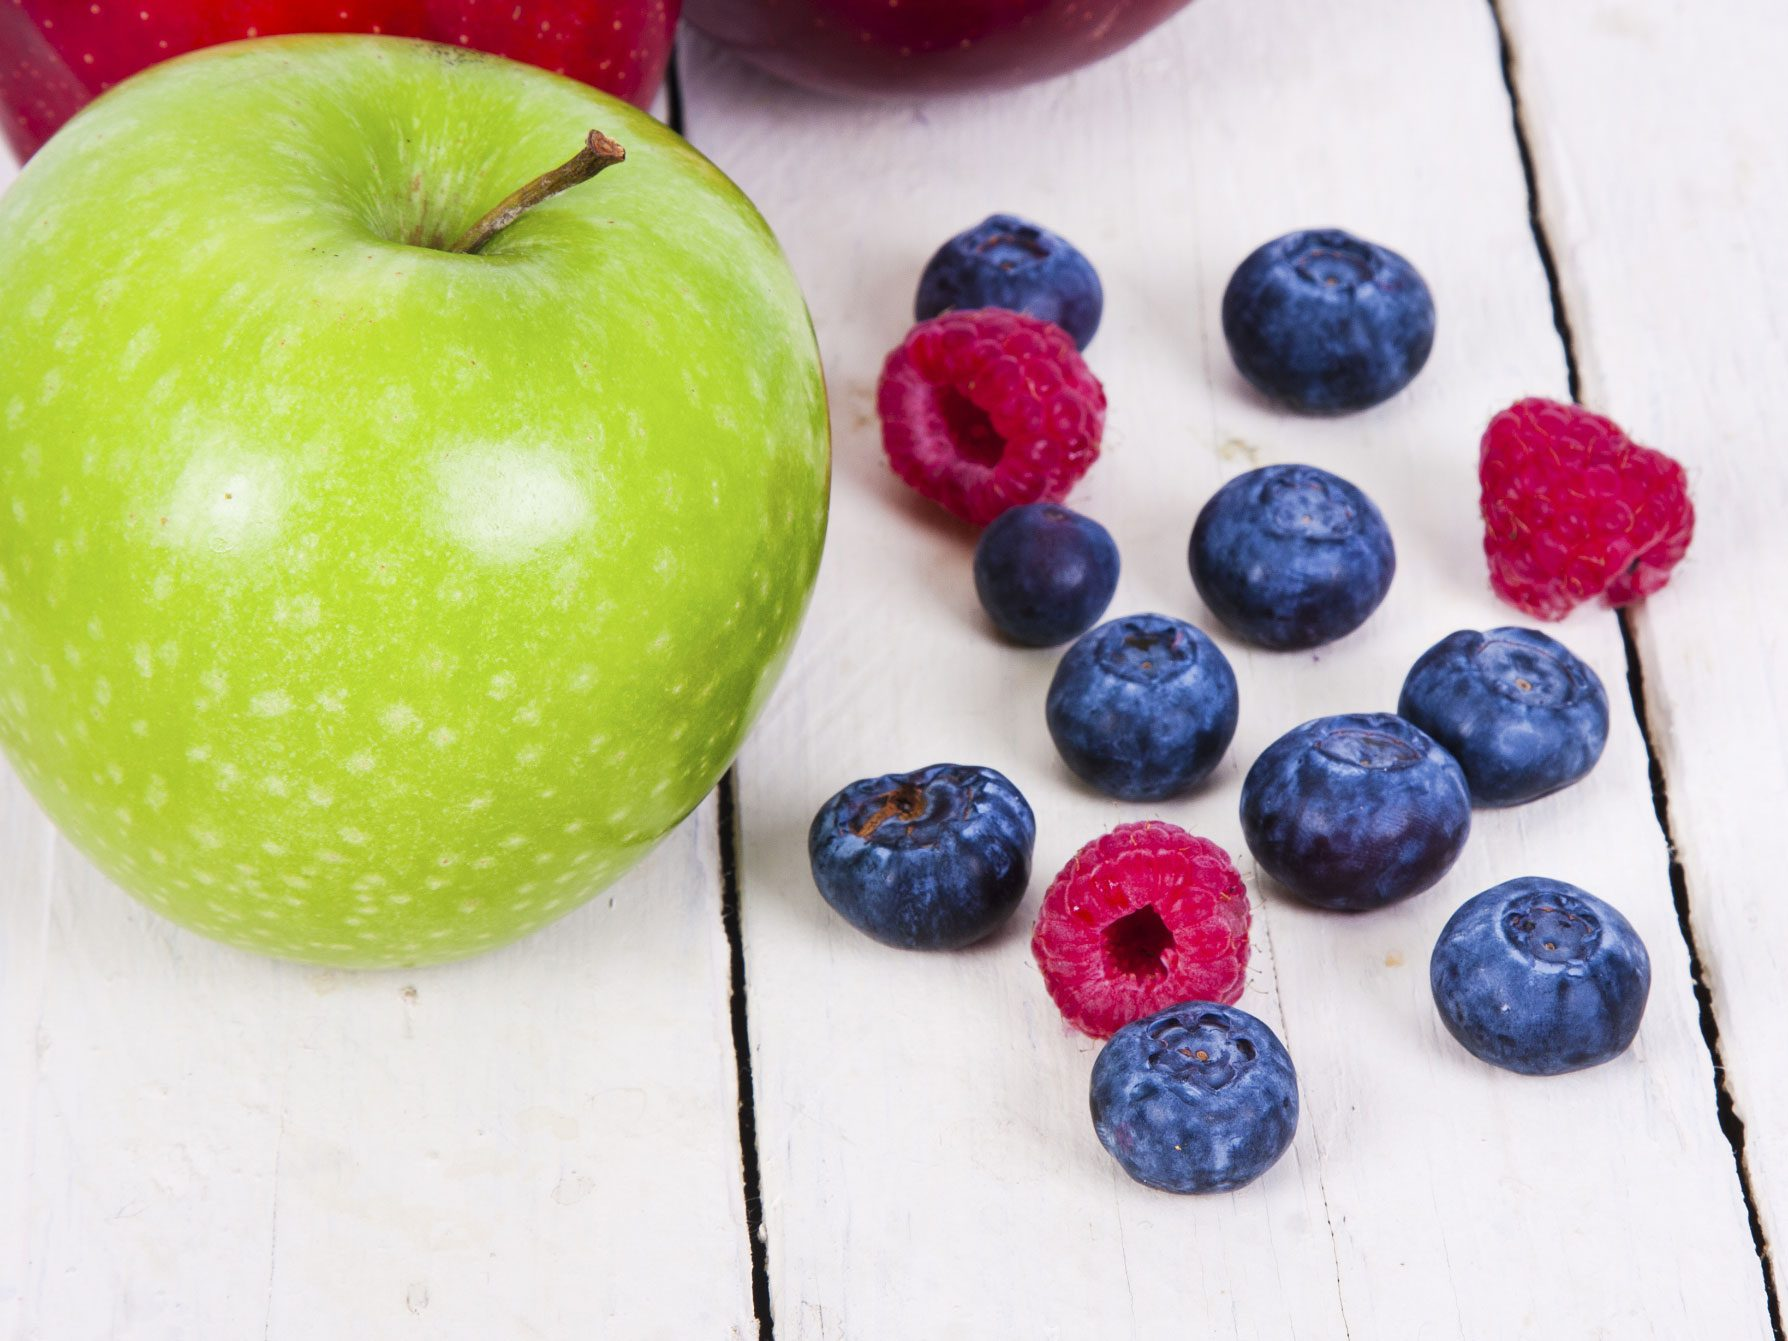 Lower Your Cancer Risk by Pairing Up Apples and Raspberries